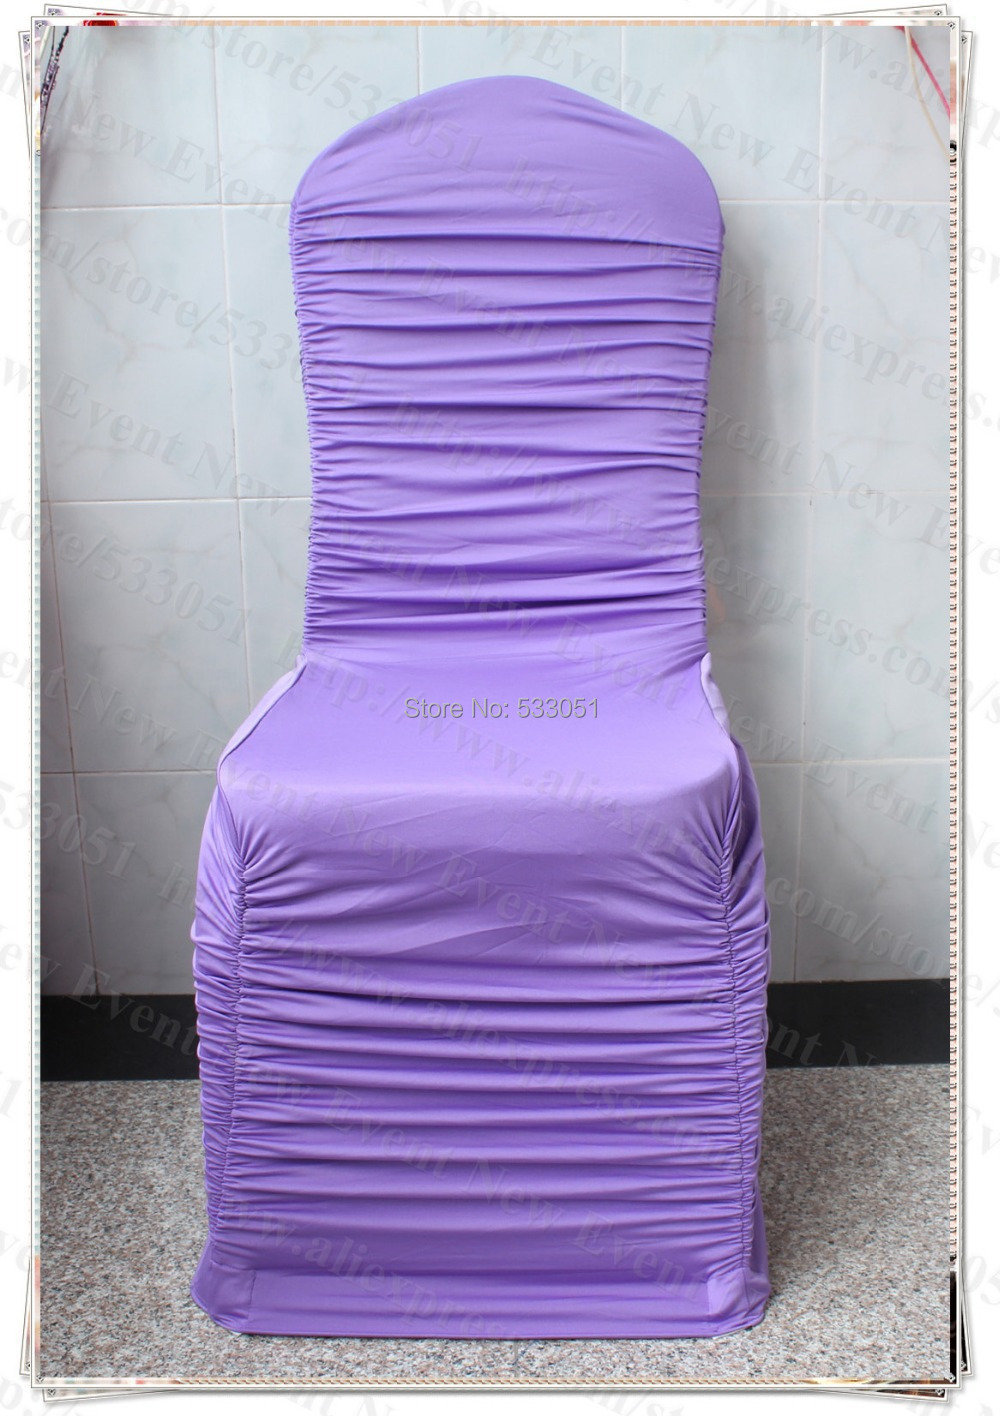 Awe Inspiring Hot Sale Lavender Color Ruffled Spandex Chair Cover Ruffle Gmtry Best Dining Table And Chair Ideas Images Gmtryco